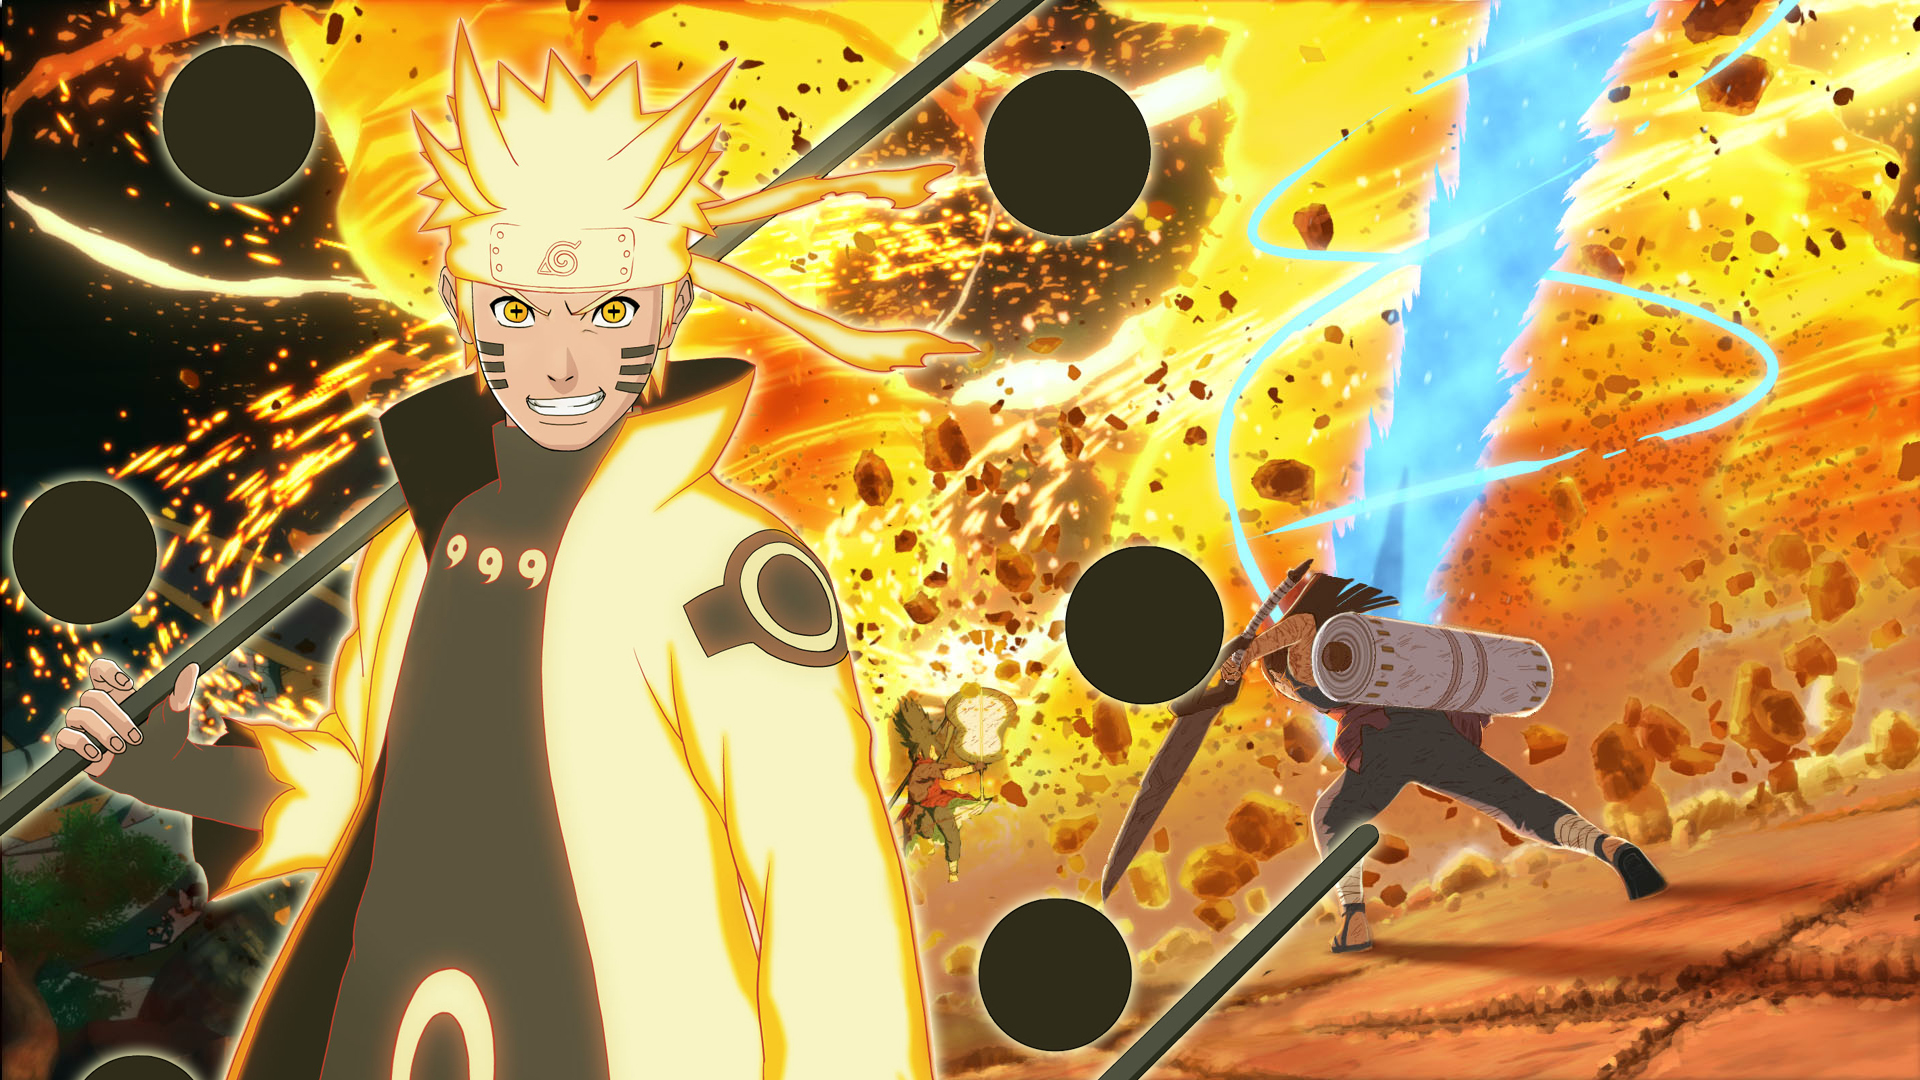 Naruto Shippuden Hd Wallpapers Sf Wallpaper